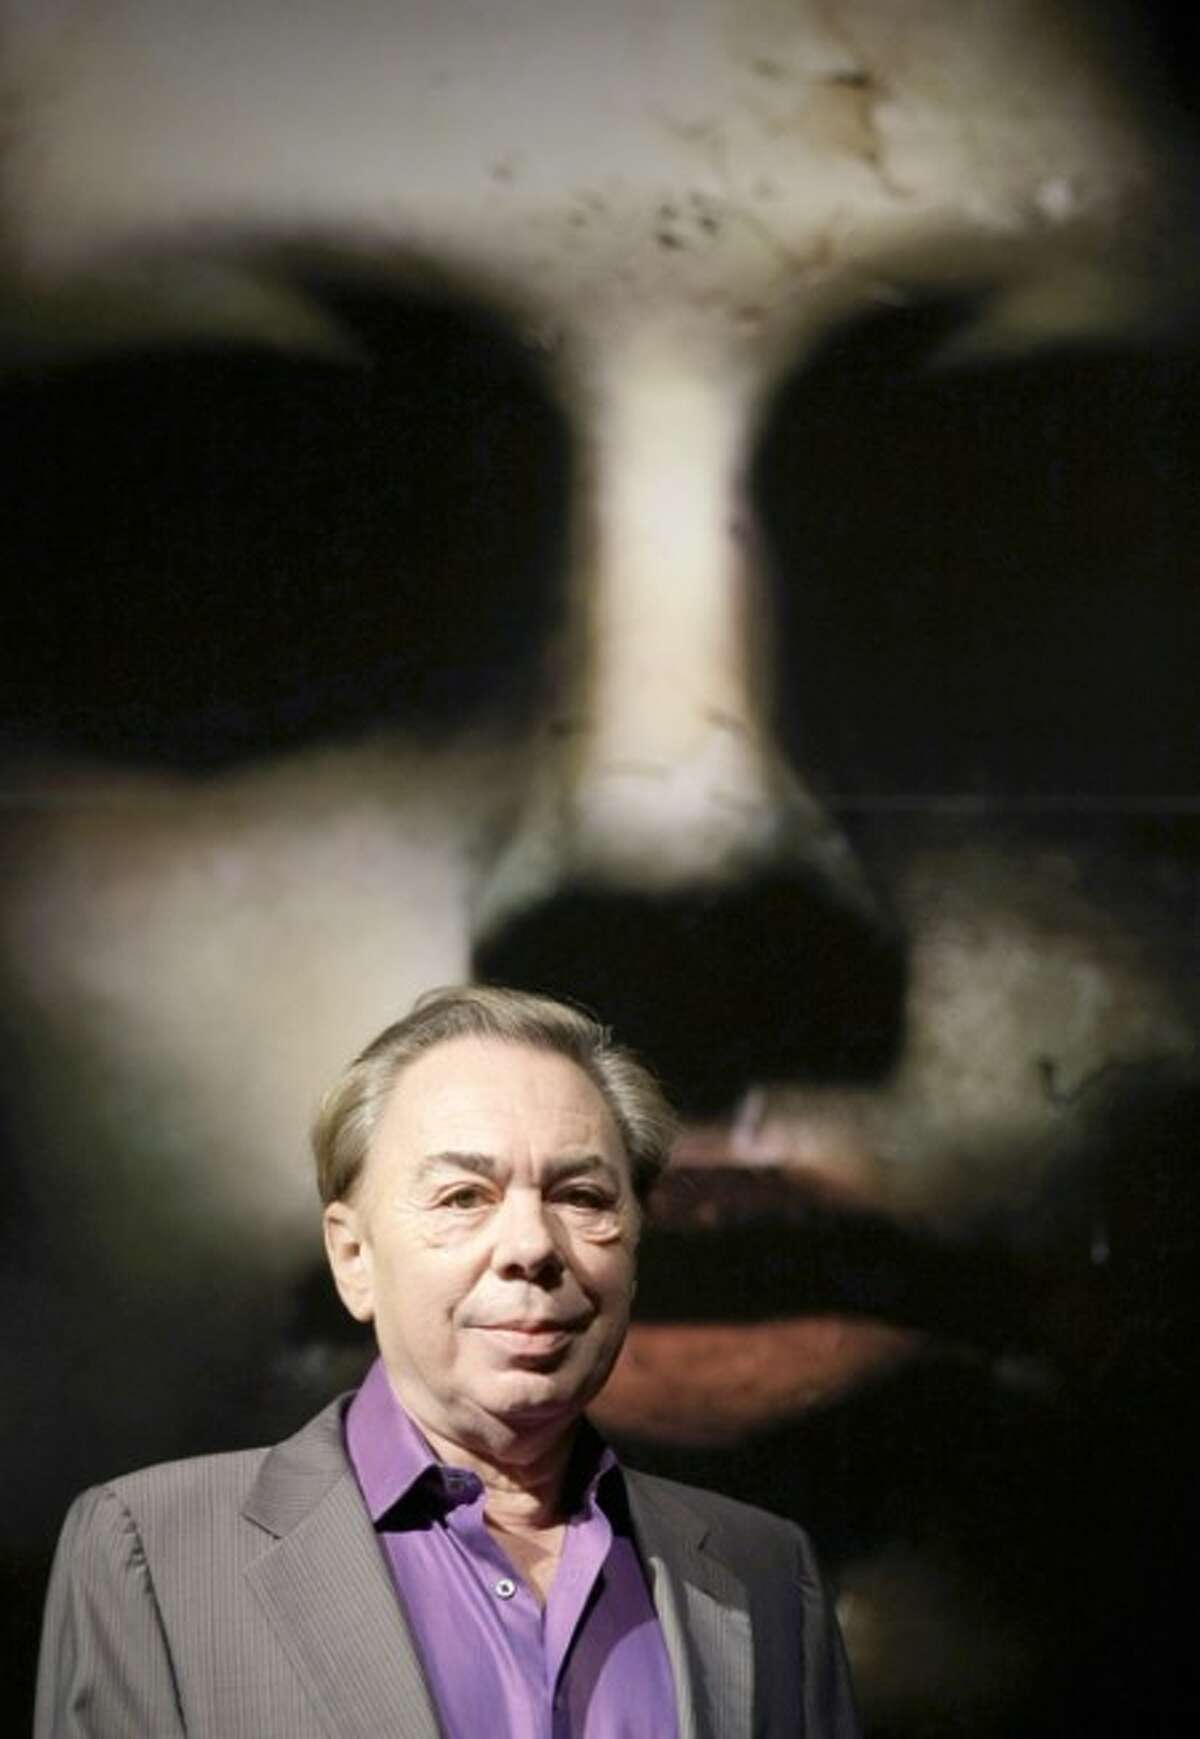 British composer Andrew Lloyd Webber promotes his new production